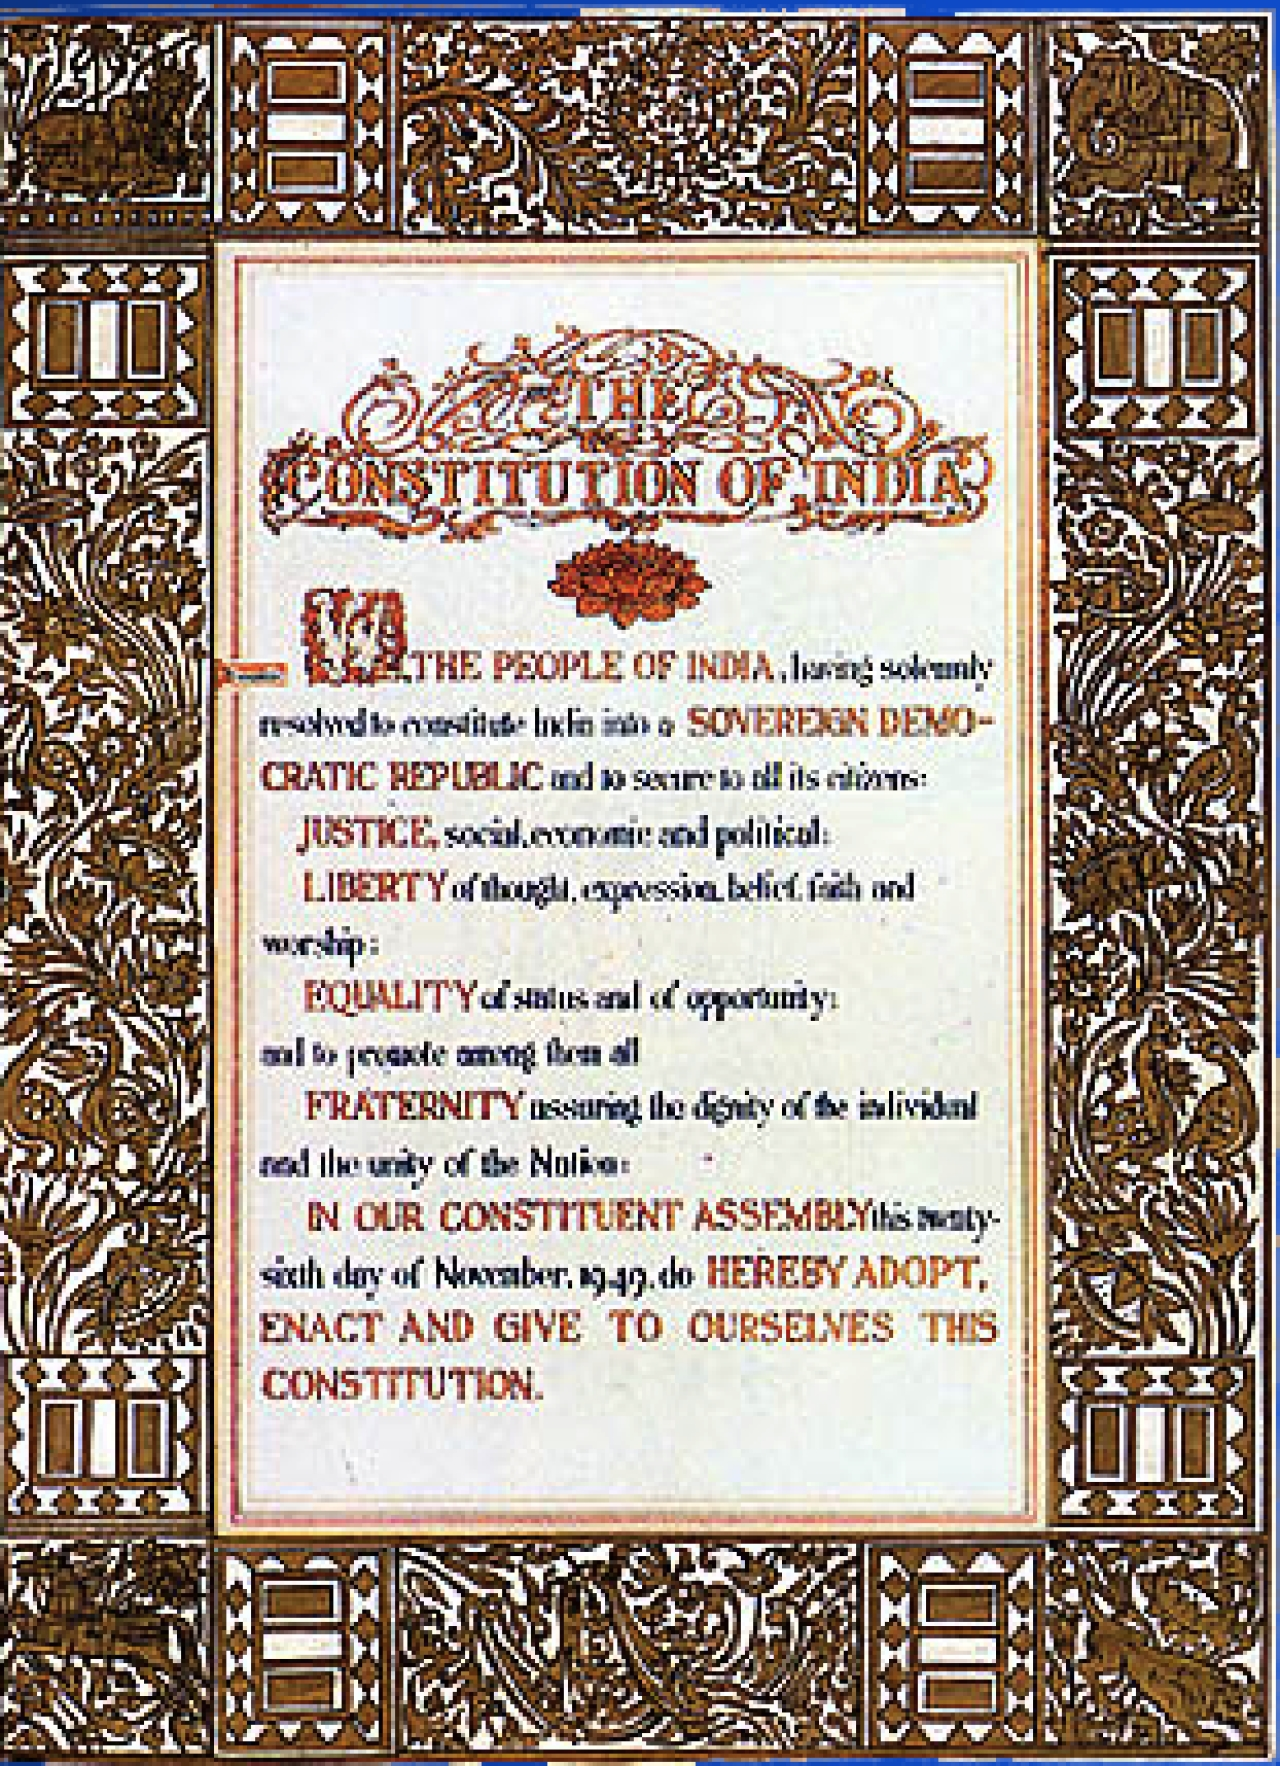 The Preamble to the Indian Constitution